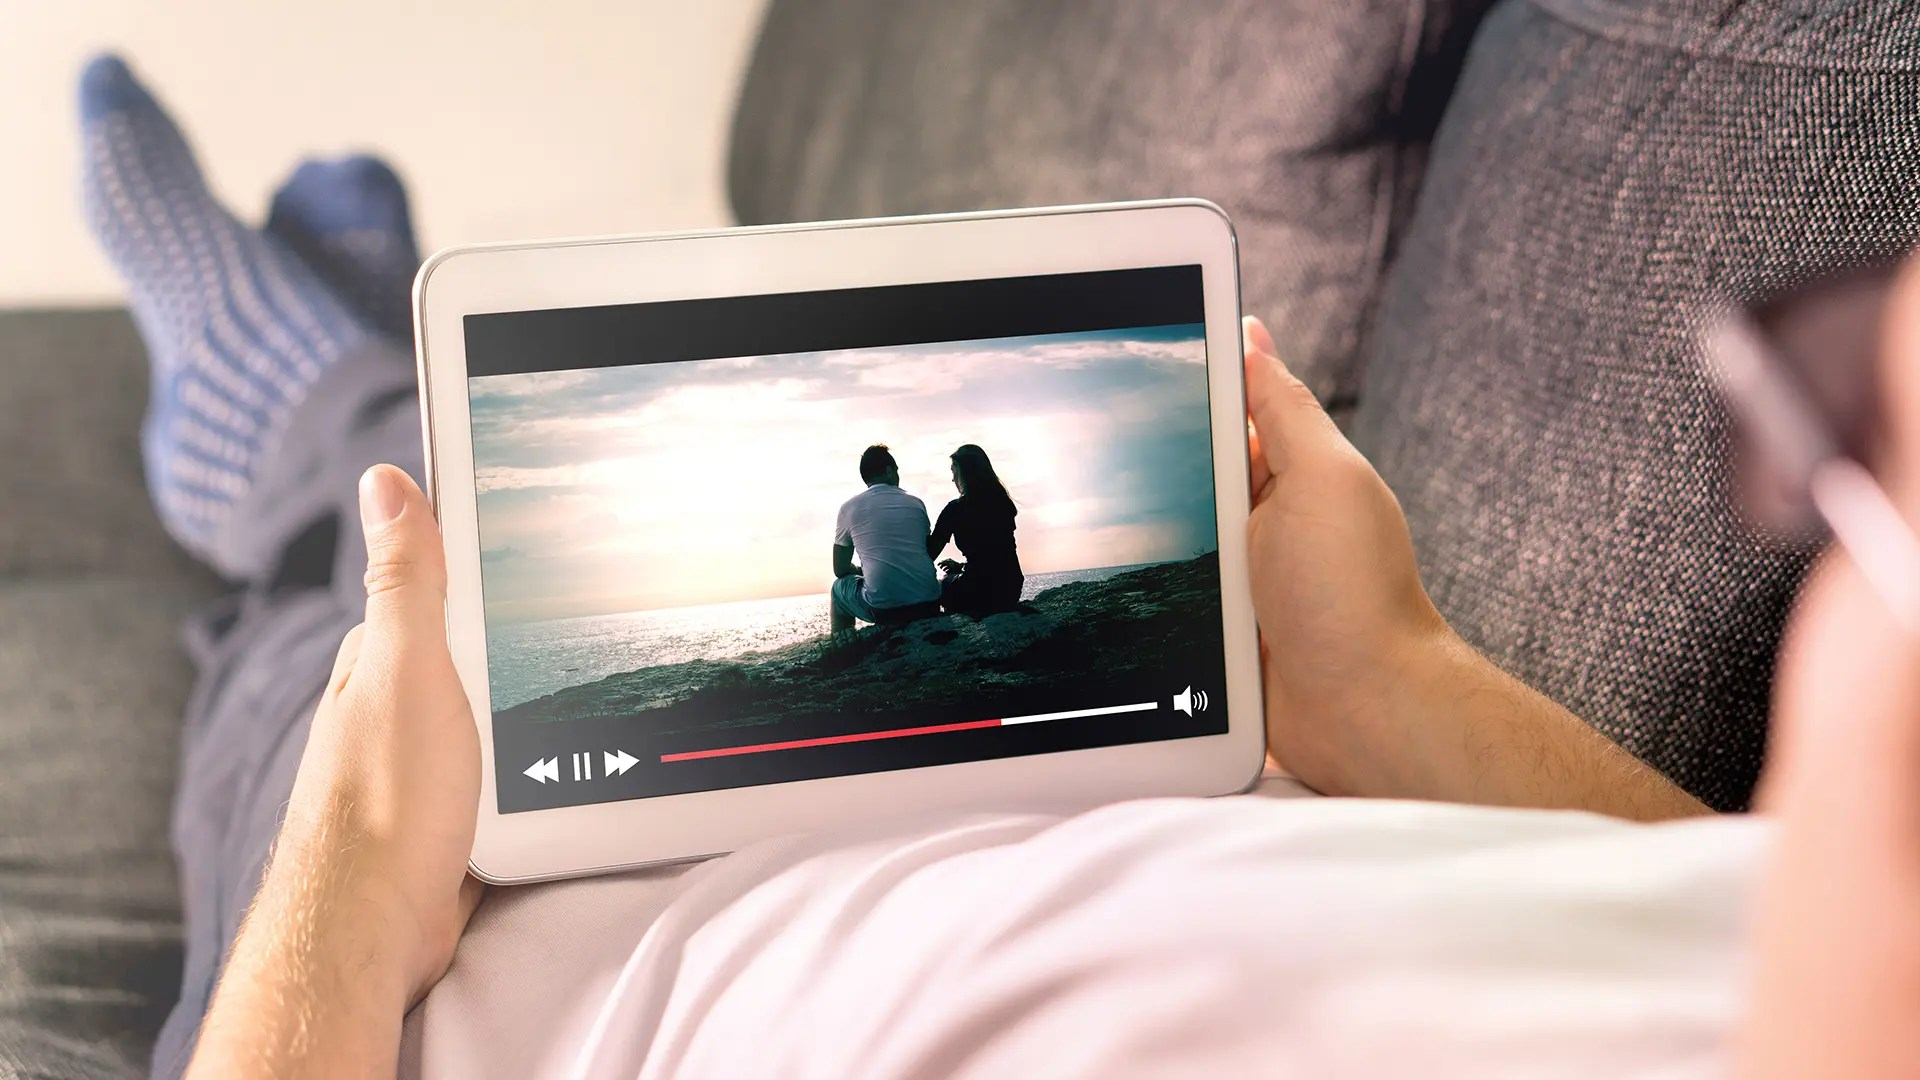 5 Ways To Watch Video With Your Long Distance Friends